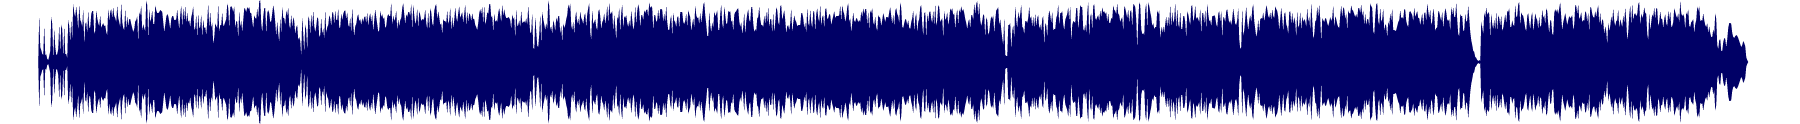 waveform of track #72223